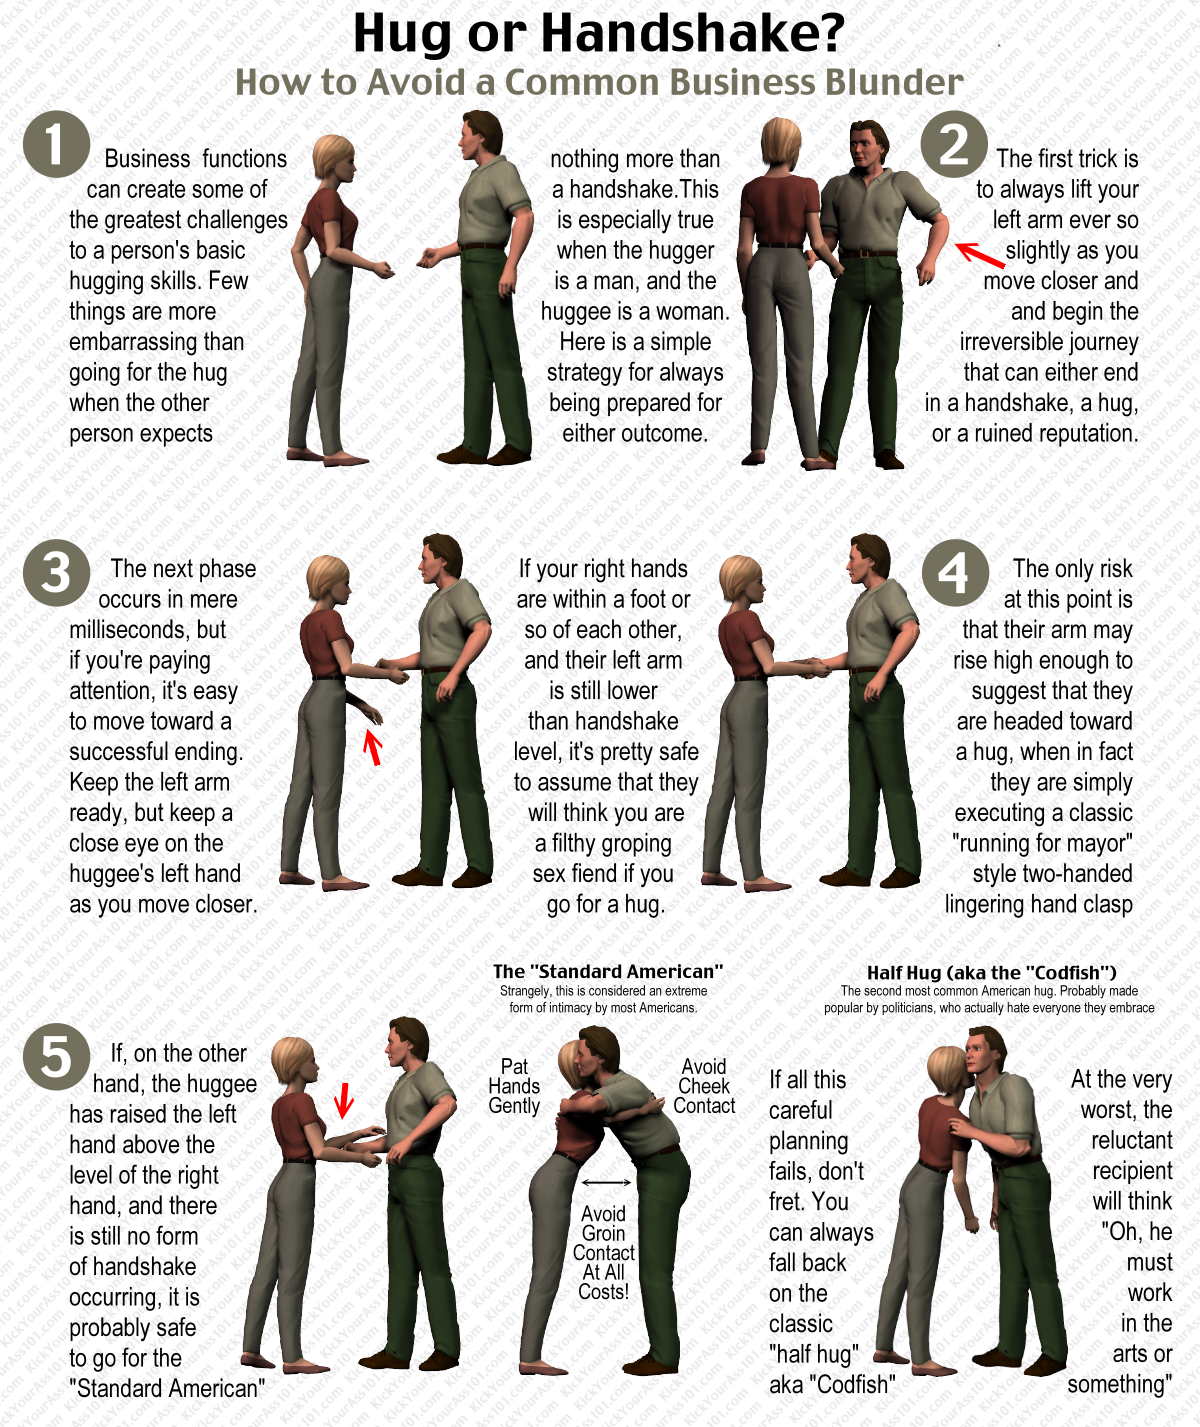 body language in different cultures essay Actions speak louder than words when having a conversation with someone, your body language speaks louder than your words men's brains and women's brains work differently, which causes them to have slightly different forms of interaction men have different proxemics, kinesics, and paralanguage than women do.